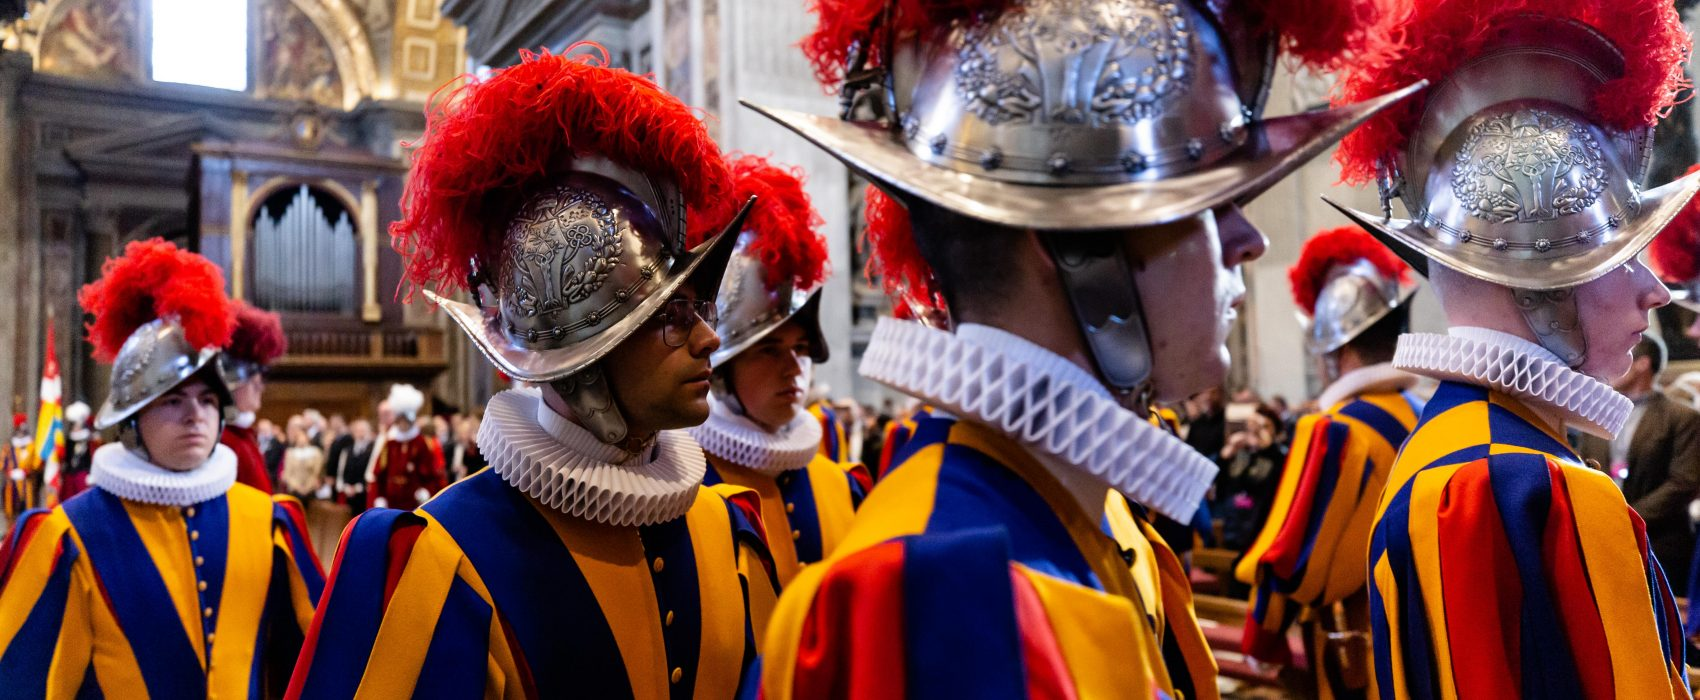 20190506 Holy Mass at the altar of the Chair of St. Peters Basilica with the Swiss Guards Daniel Ibáñez 1 1700x700 - La Guardia Suiza: el ejército más pequeño y antiguo del mundo